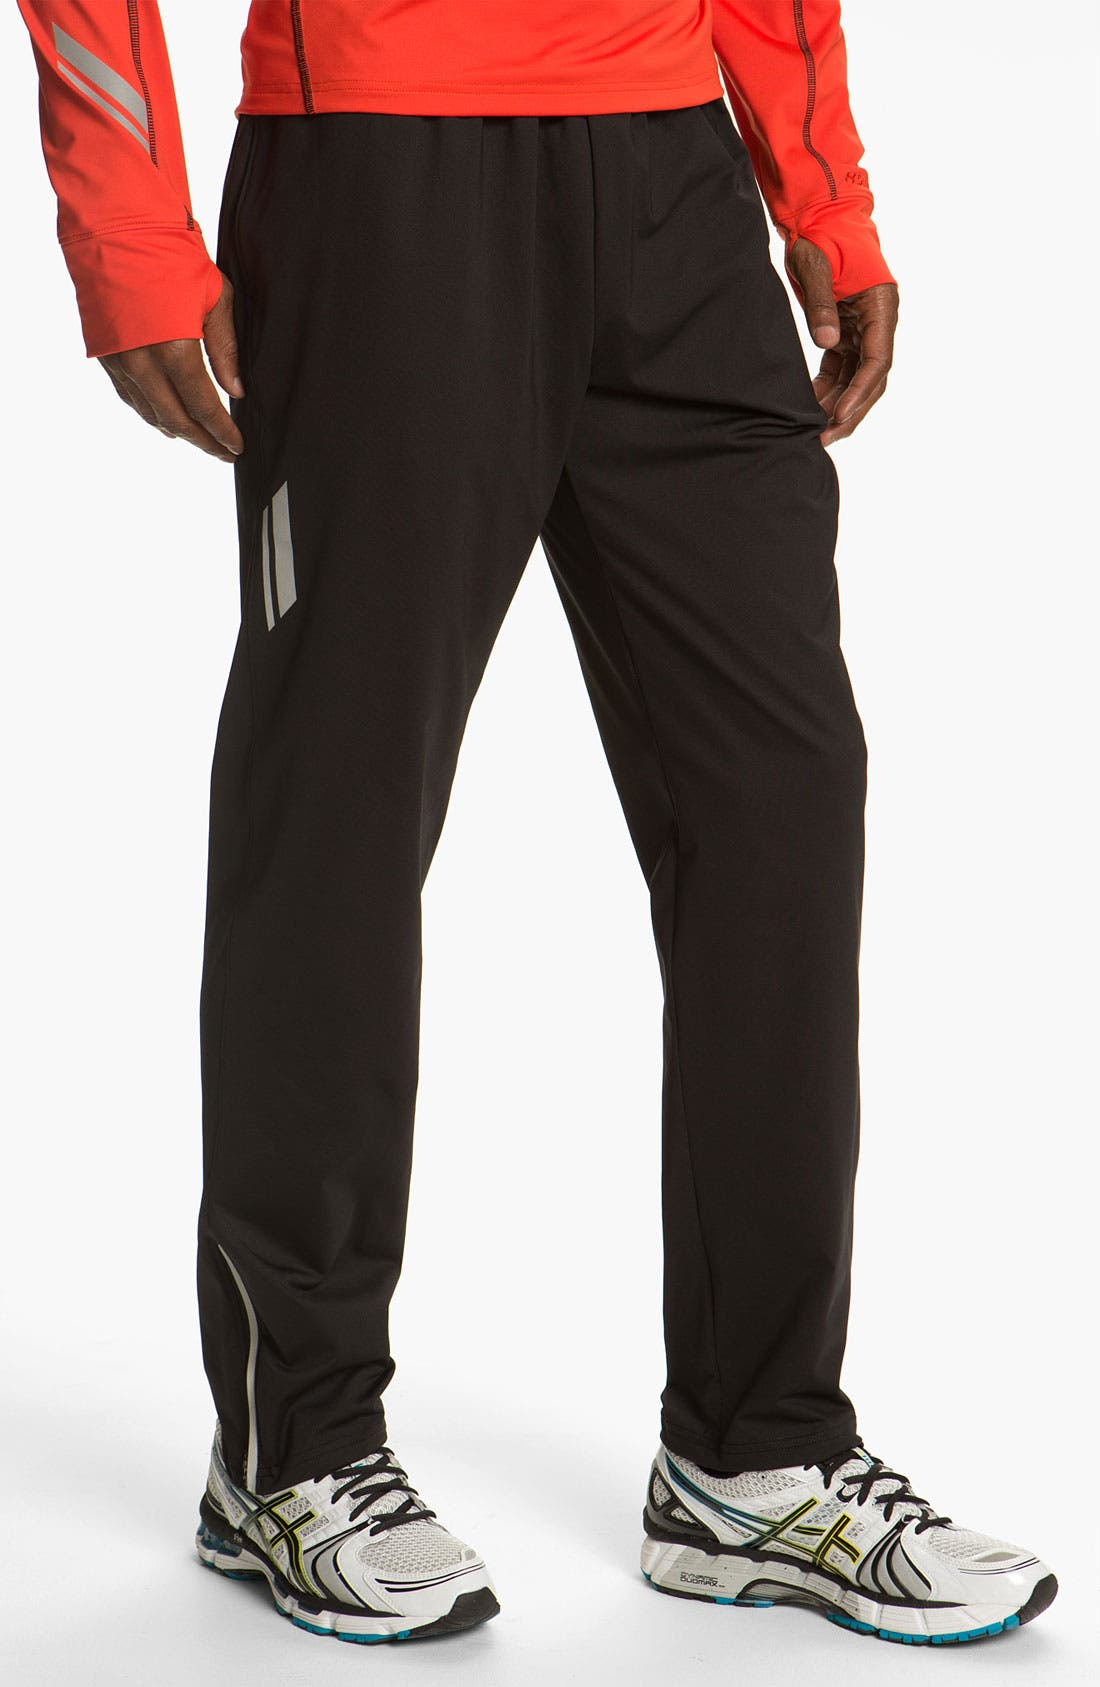 Alternate Image 1 Selected - Under Armour 'Storm Run' Track Pants